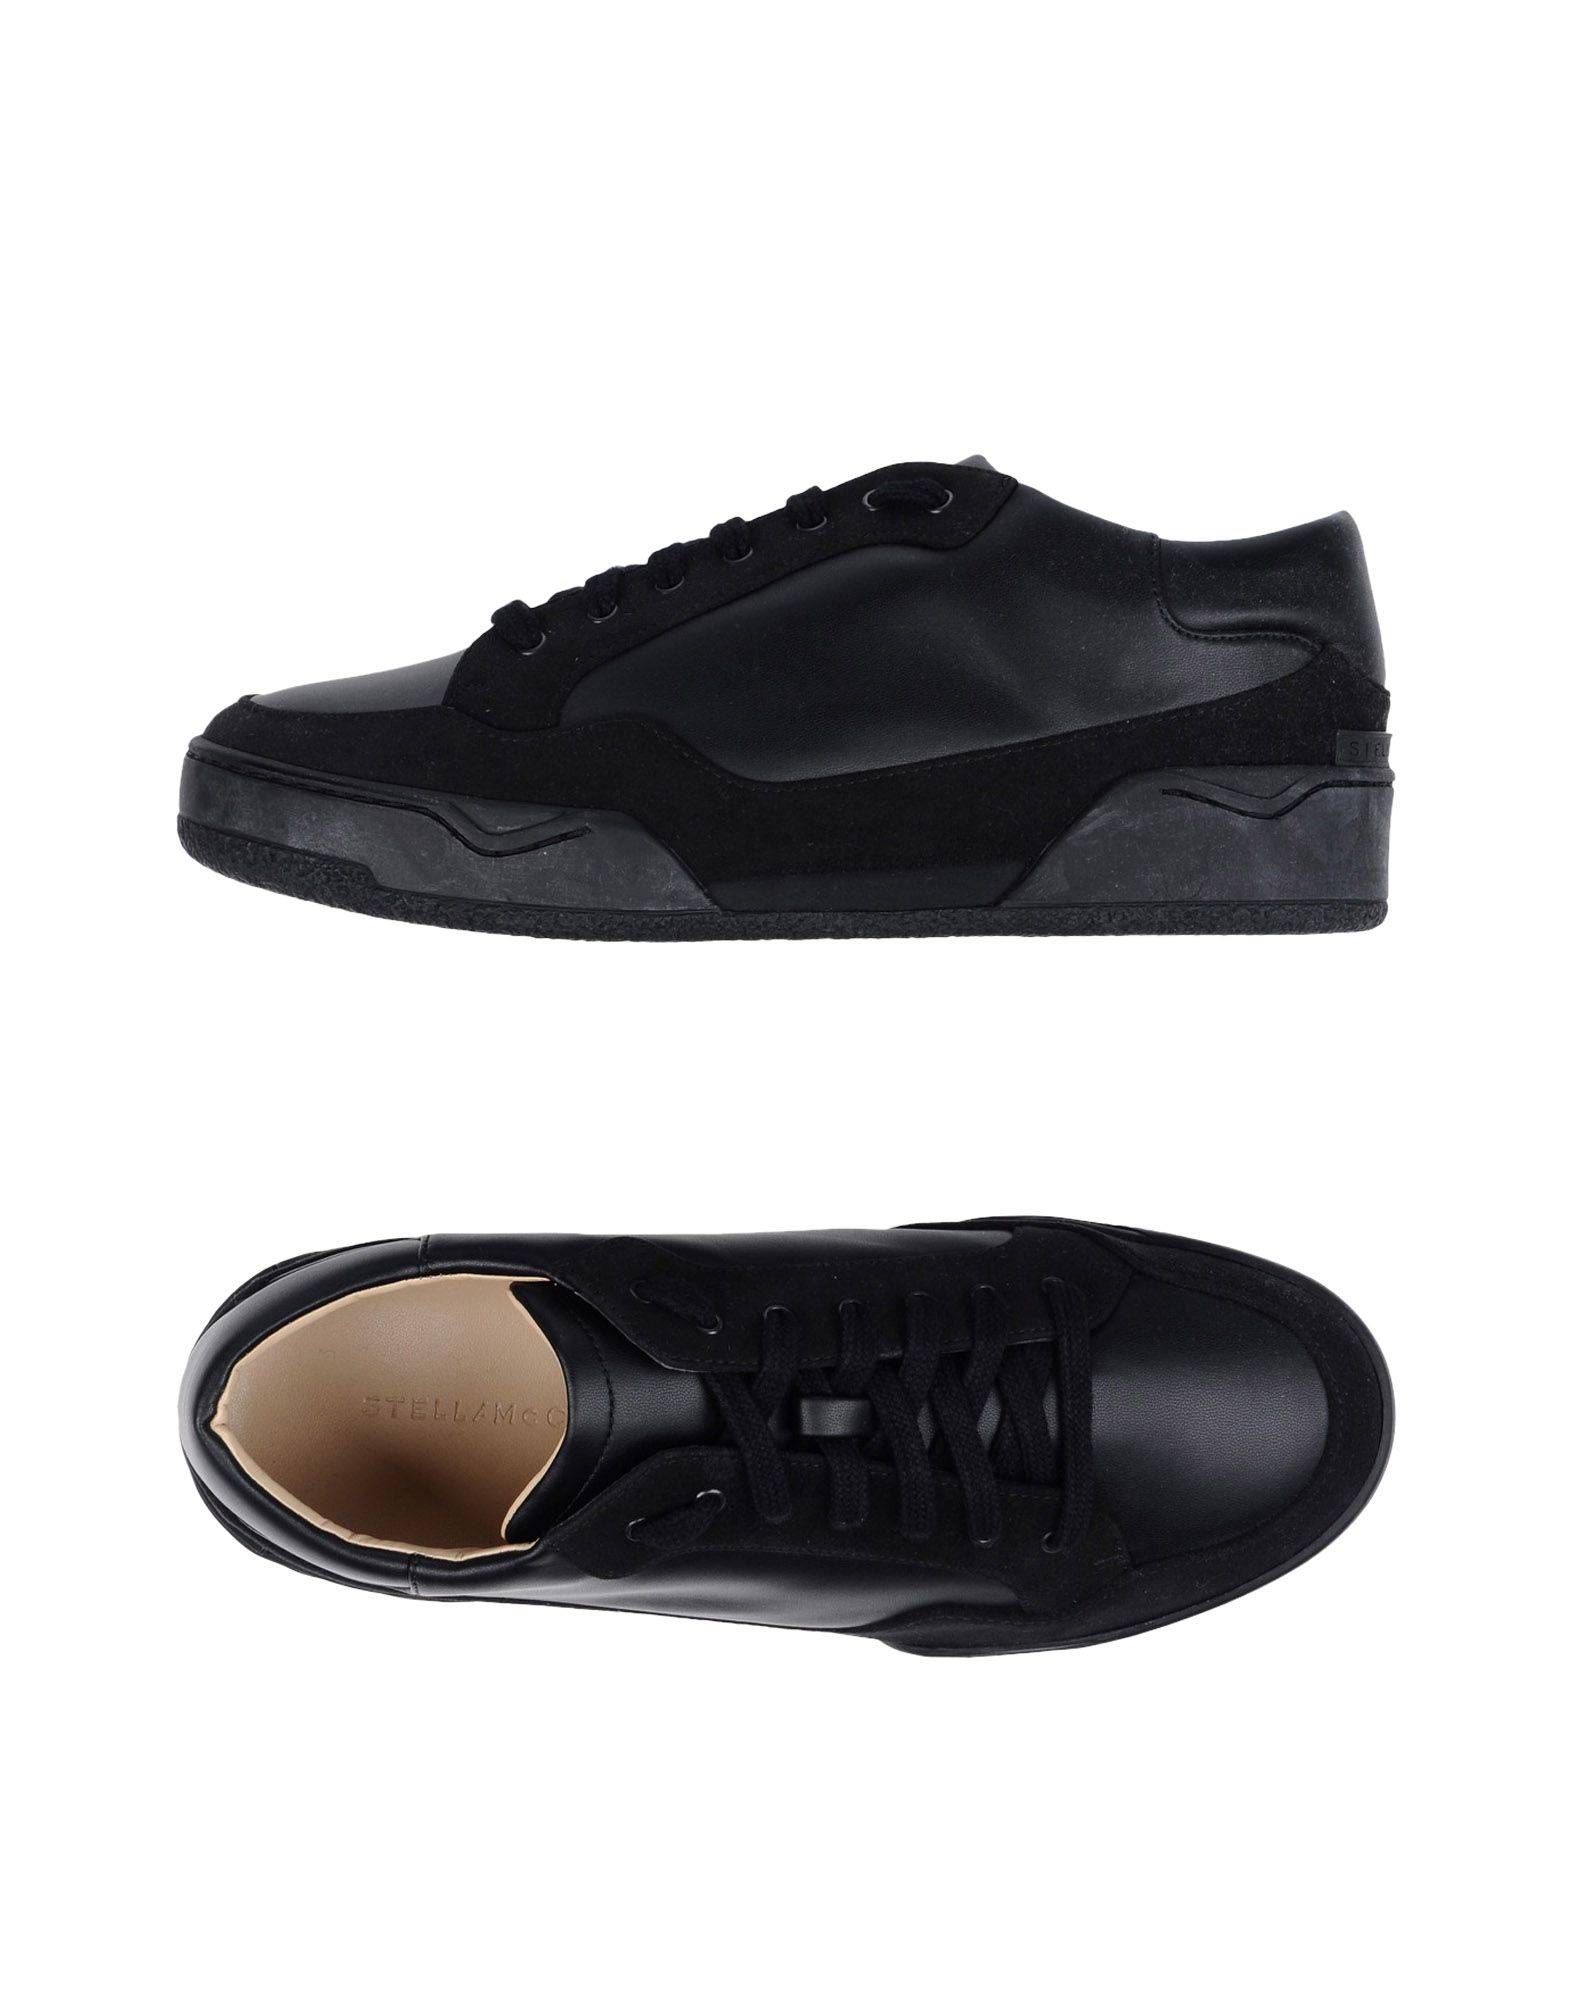 Chaussures À Lacets Stella Mccartney Homme - Chaussures À Lacets Stella Mccartney sur